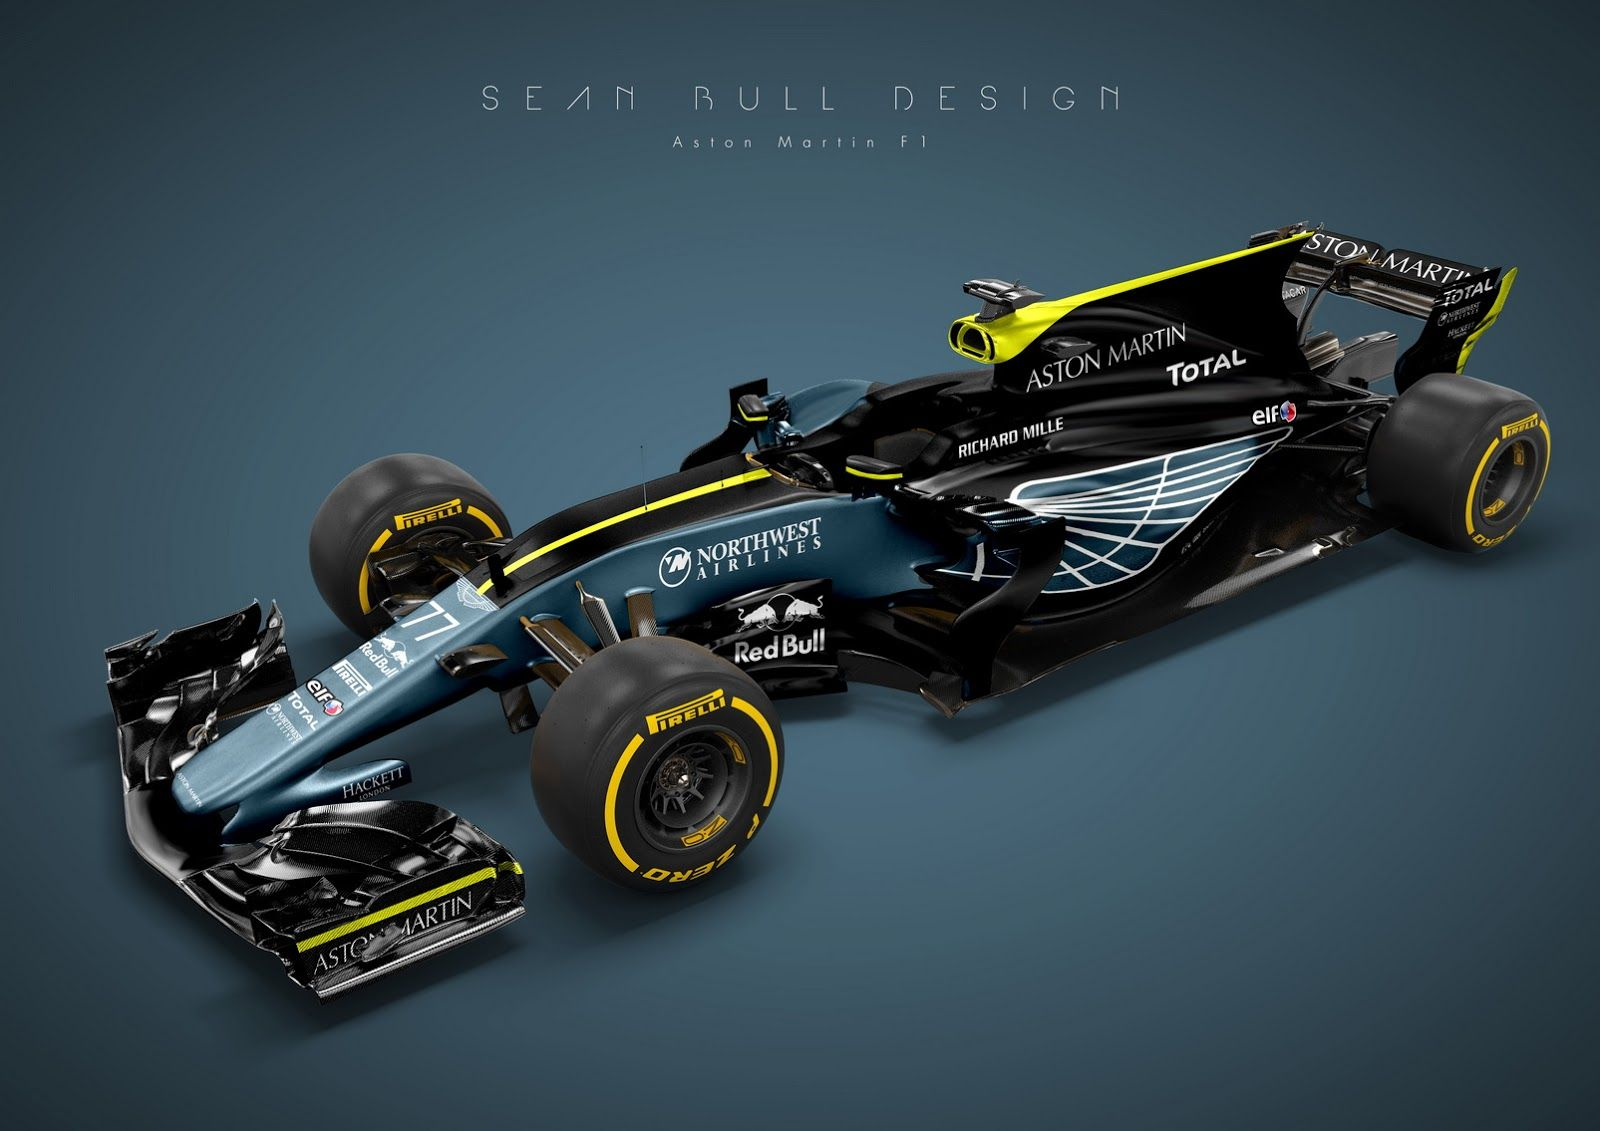 This Is What An Aston Martin F1 Factory Team Could Look Like Carscoops Aston Martin Racing Car Design Aston